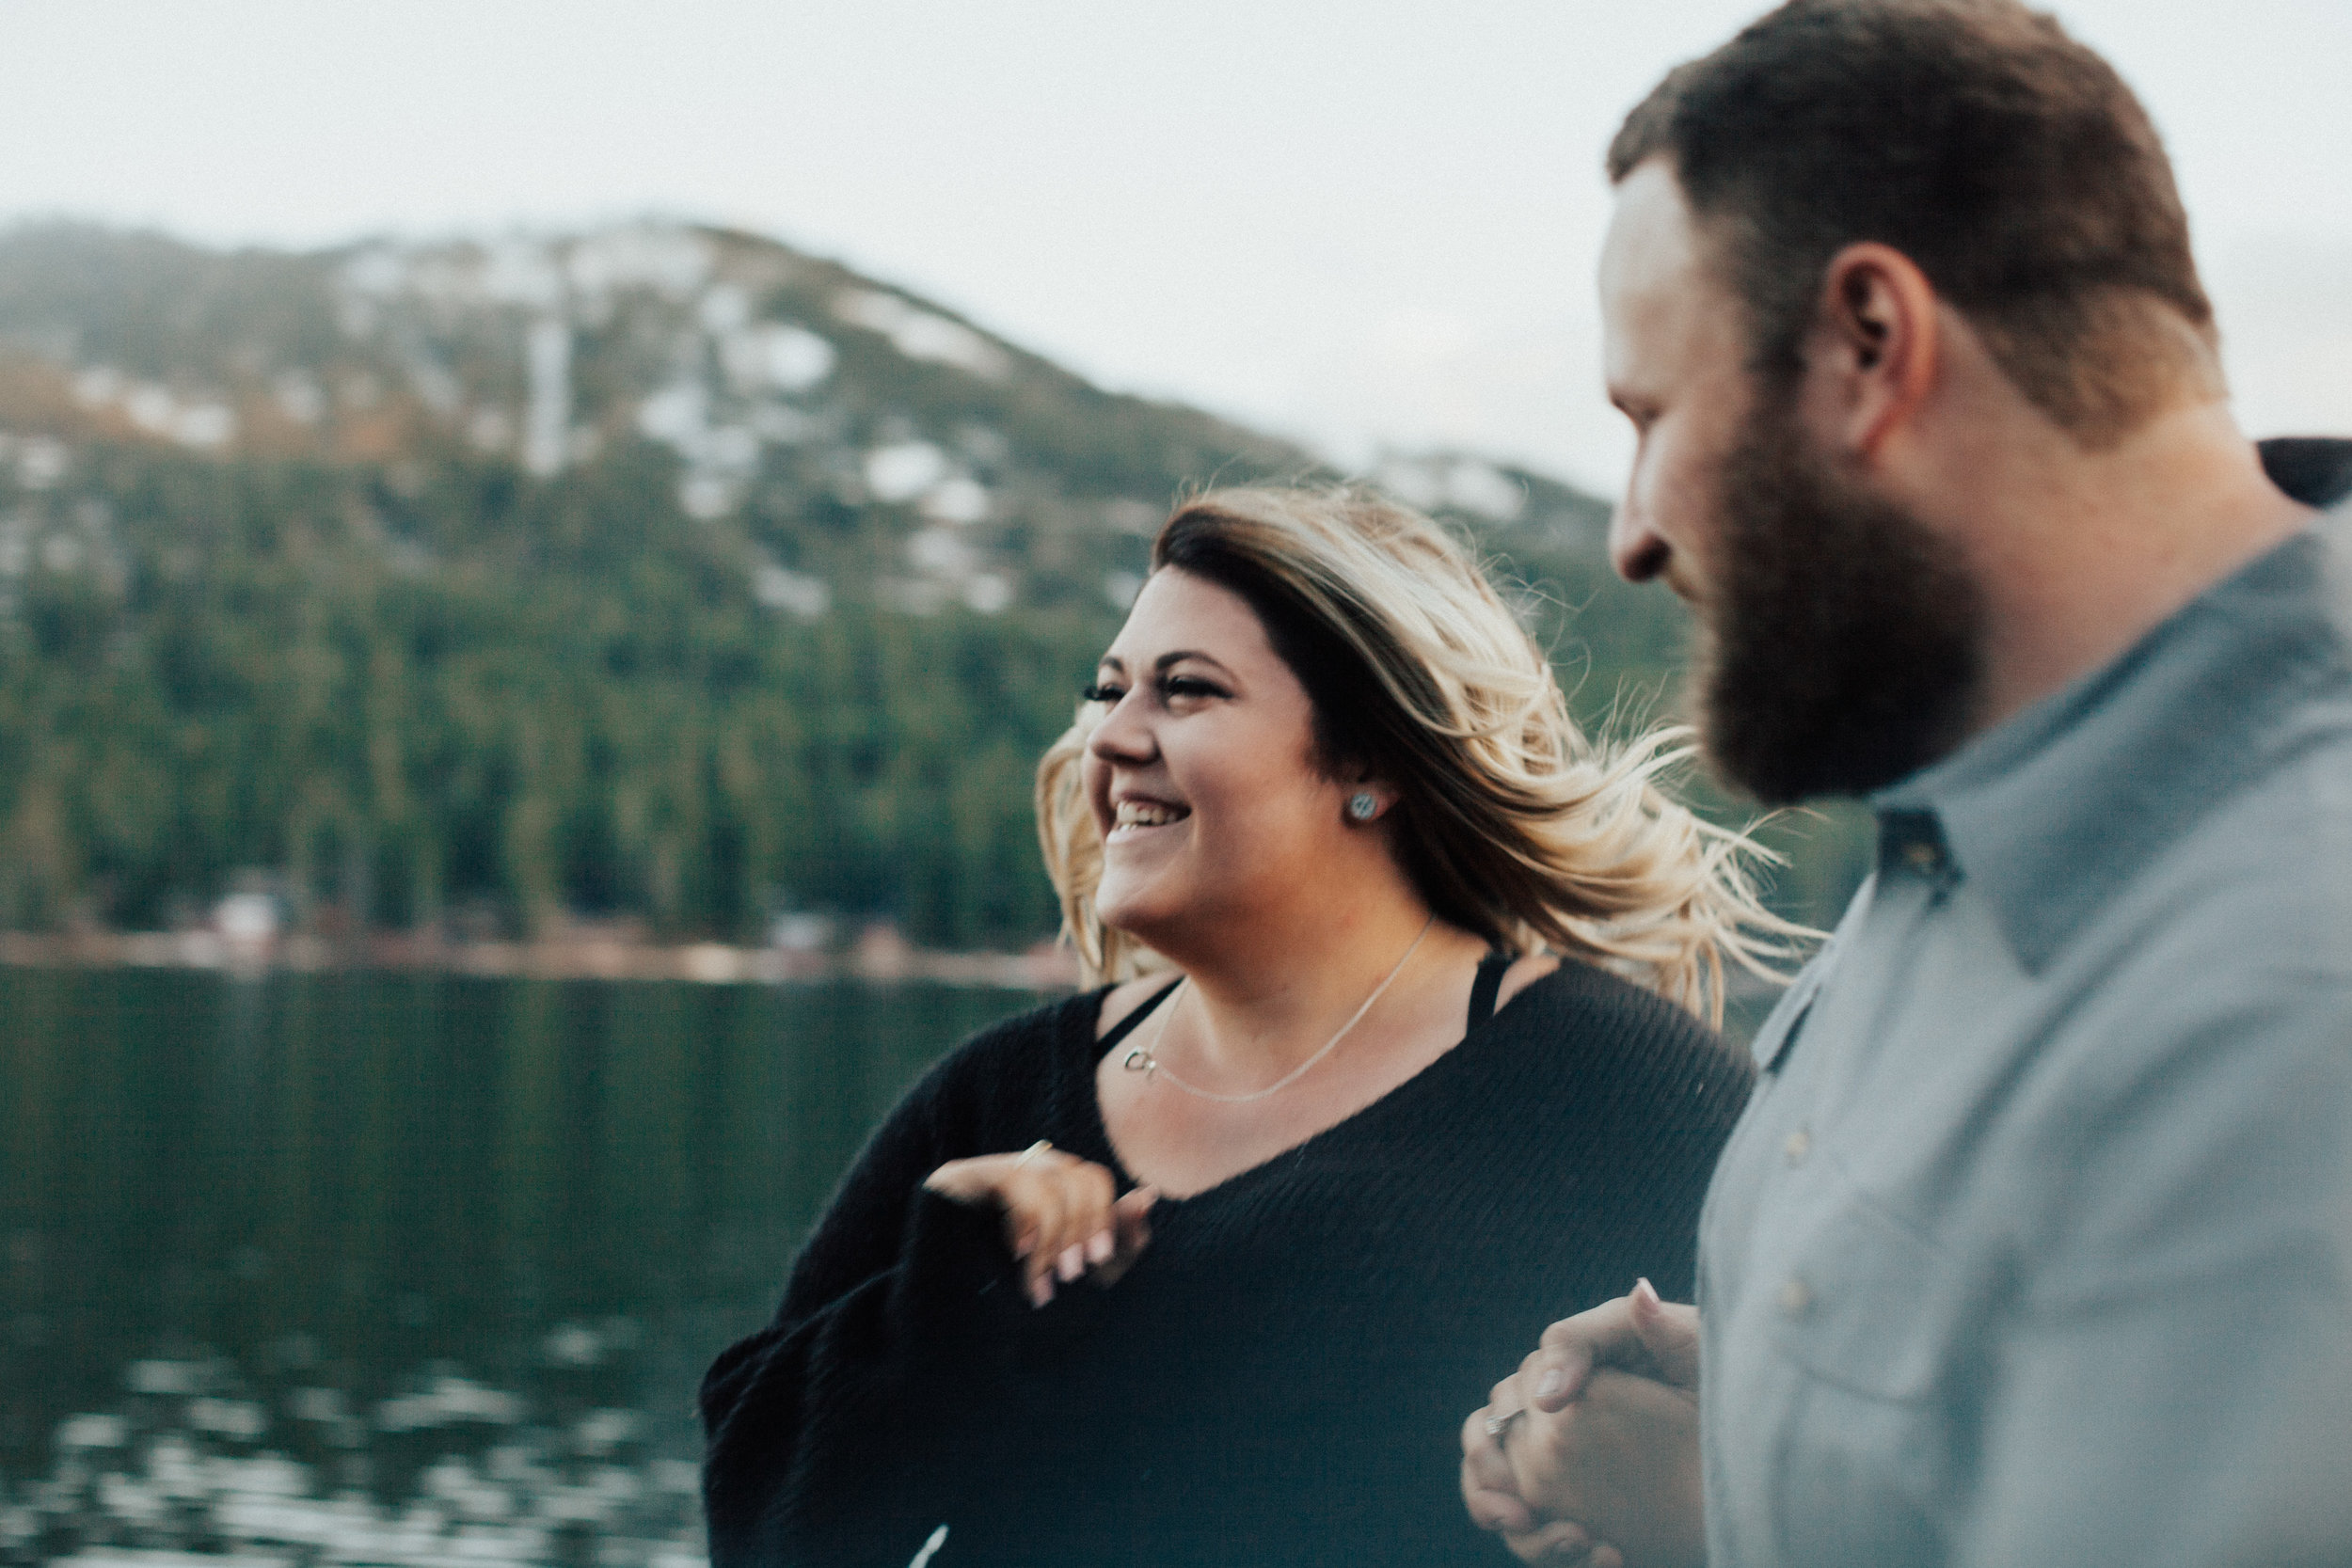 Lovers by the lake. Engagement photography in northern California.